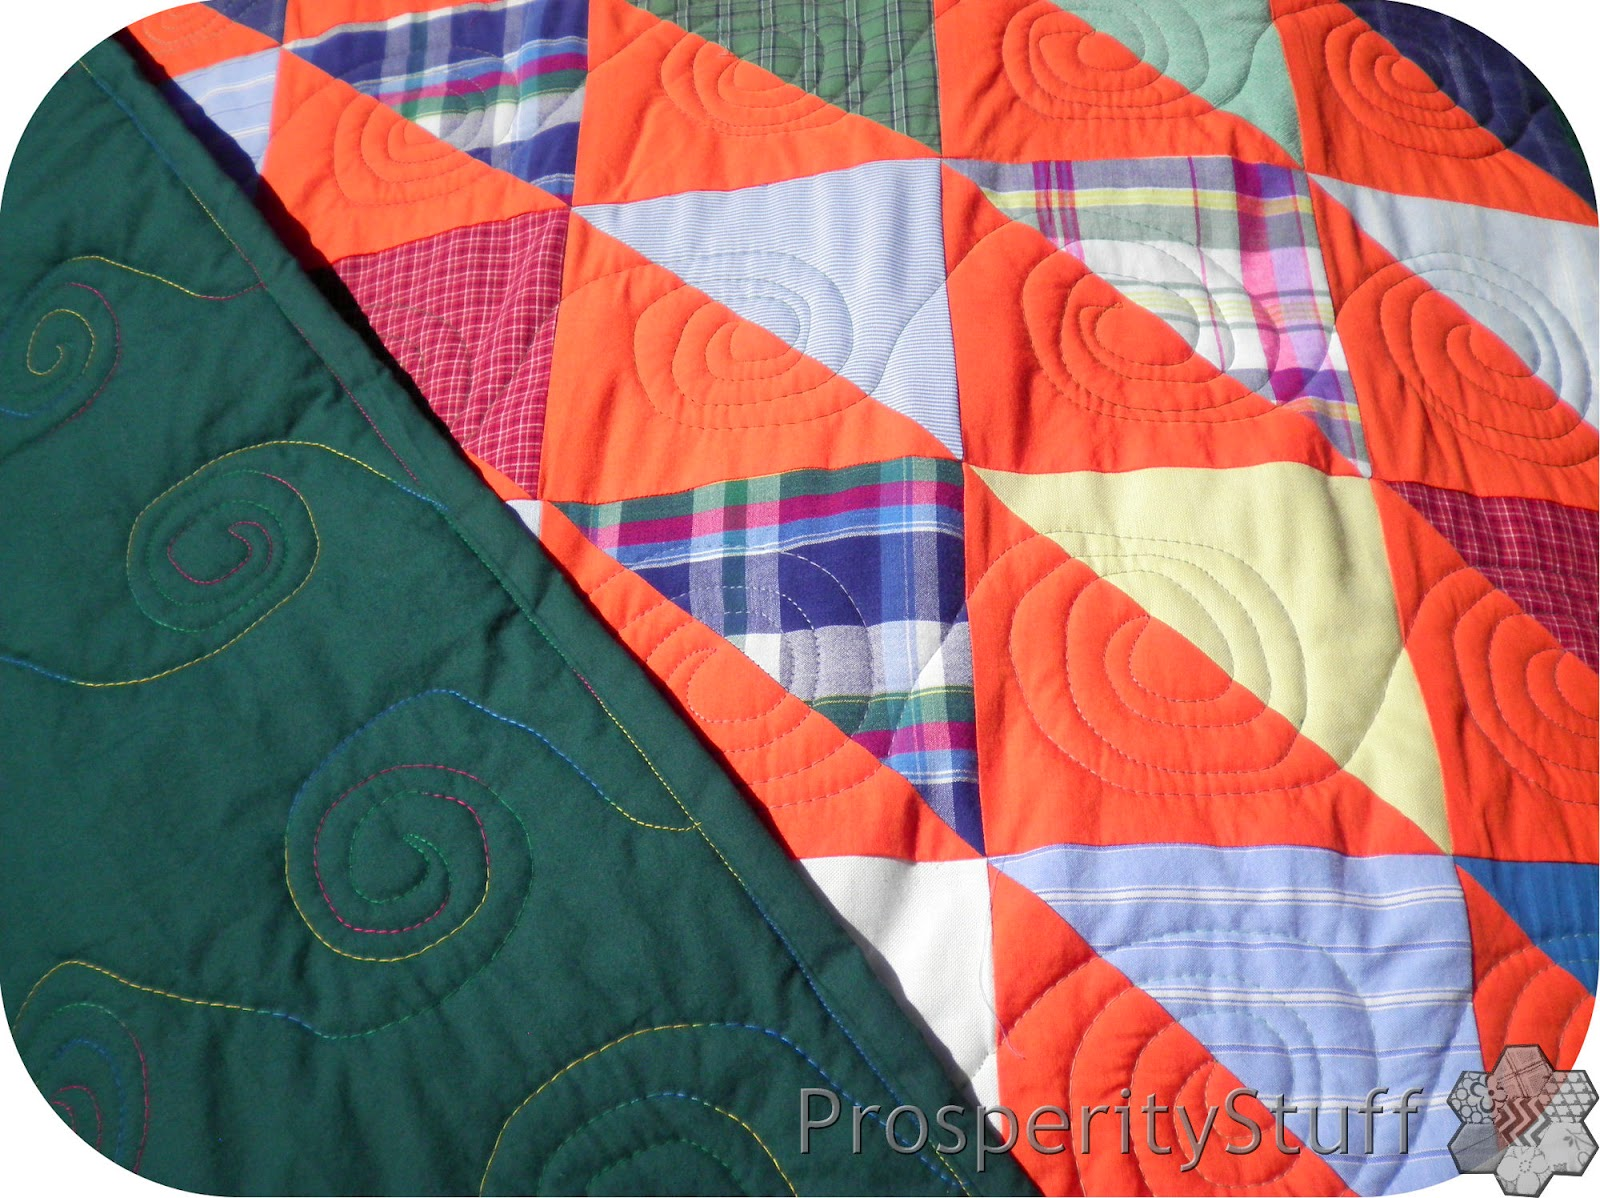 ProsperityStuff Half-Square-Triangle Quilt - shirts & sheets